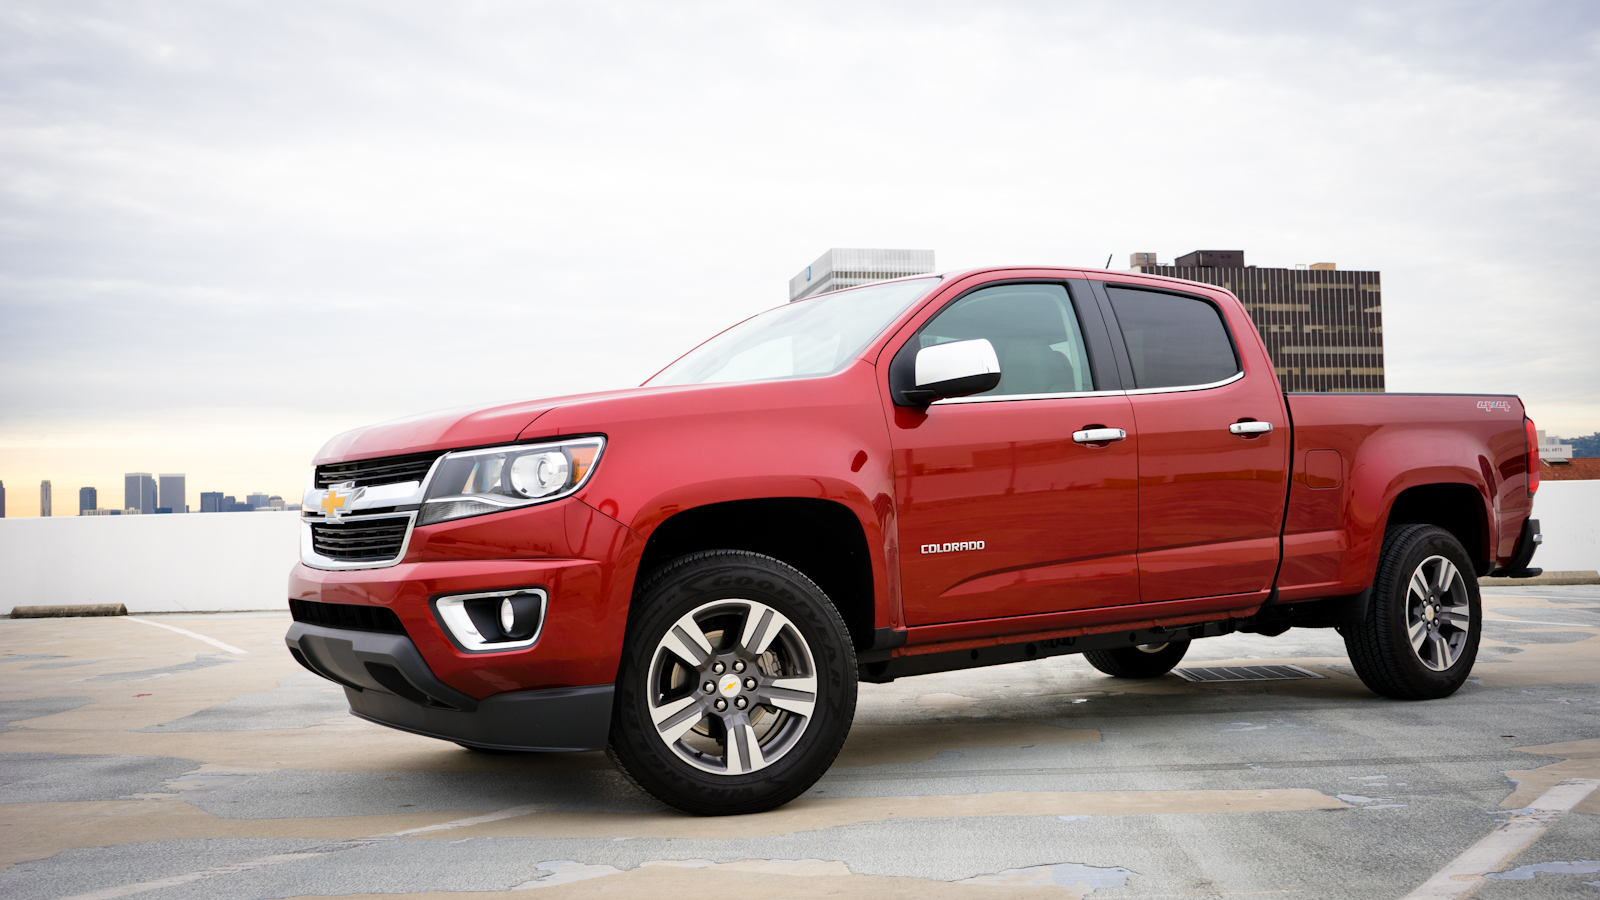 2015 Chevrolet Colorado Reviewed The Truth About Cars